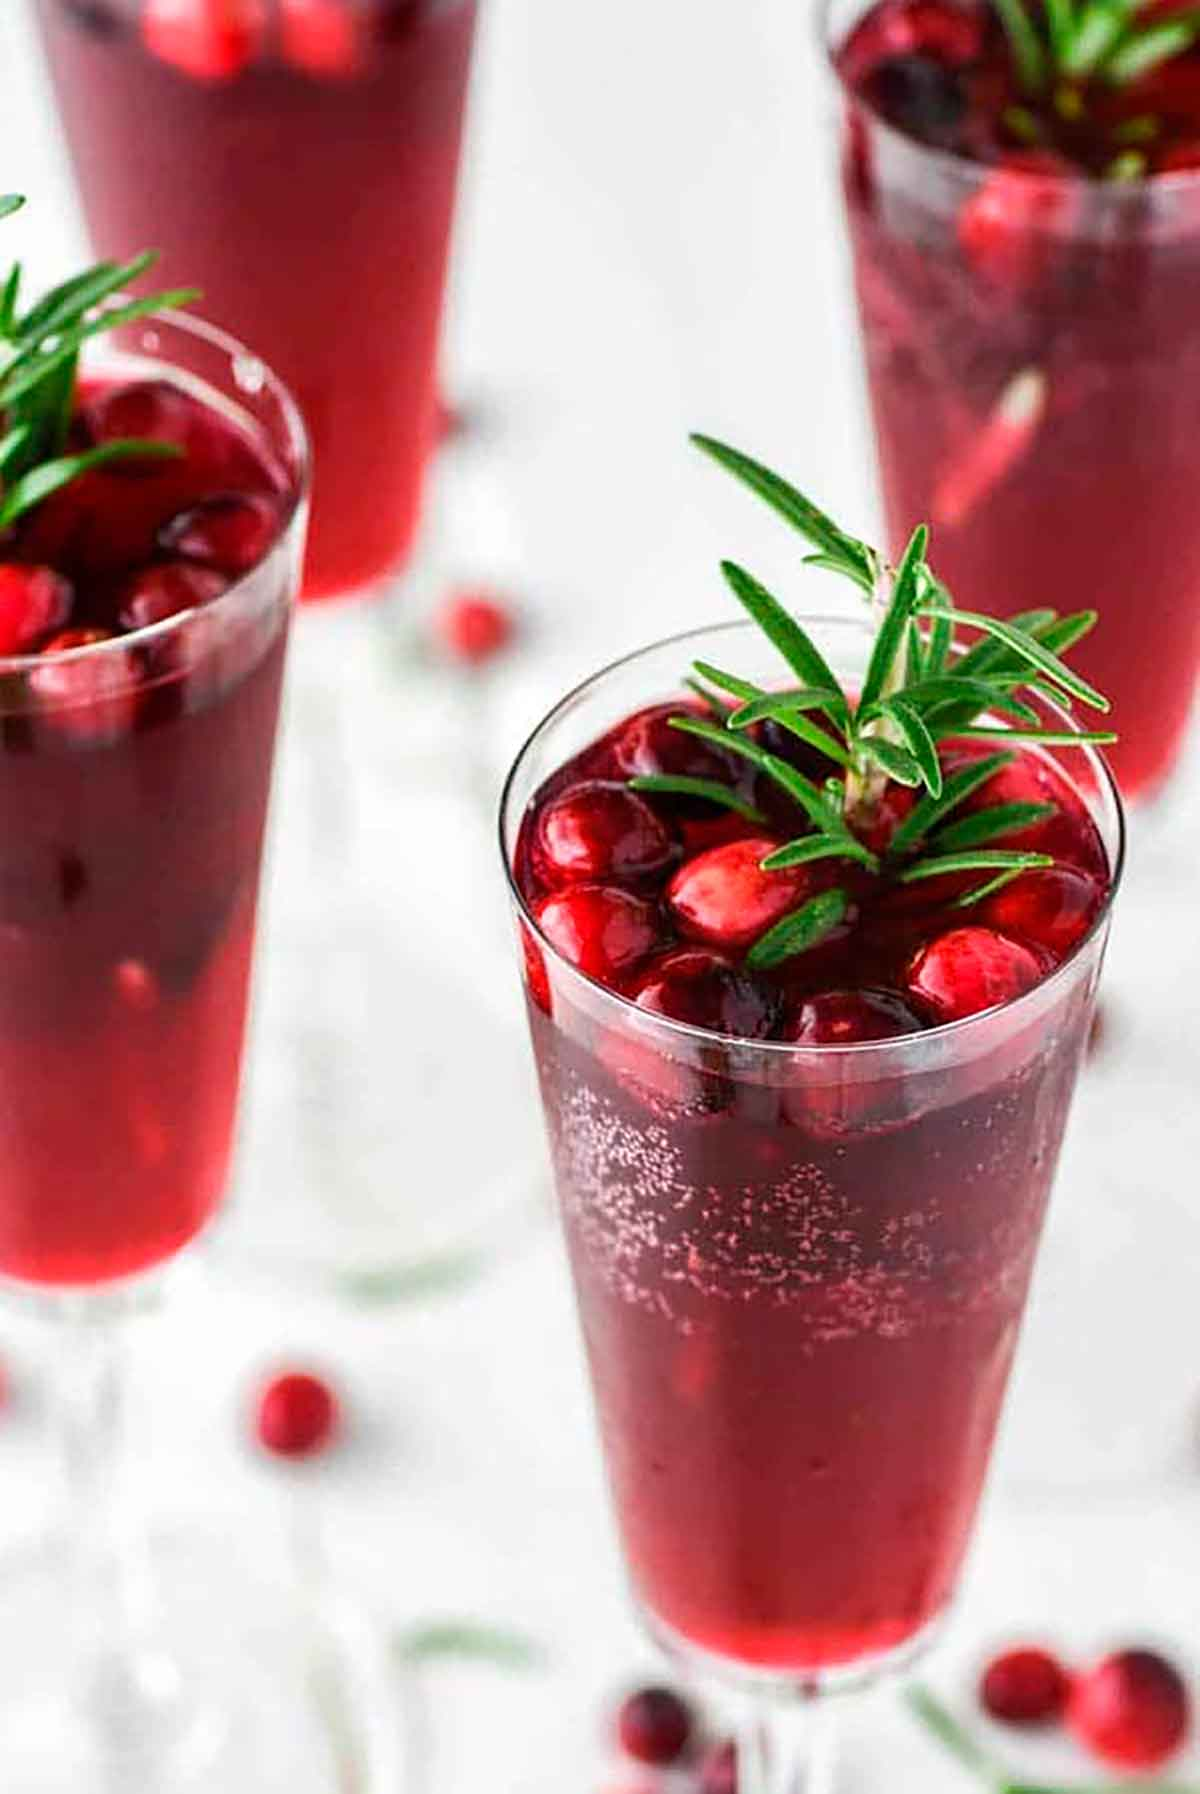 4 cranberry mimosas, garnished with cranberries and rosemary.